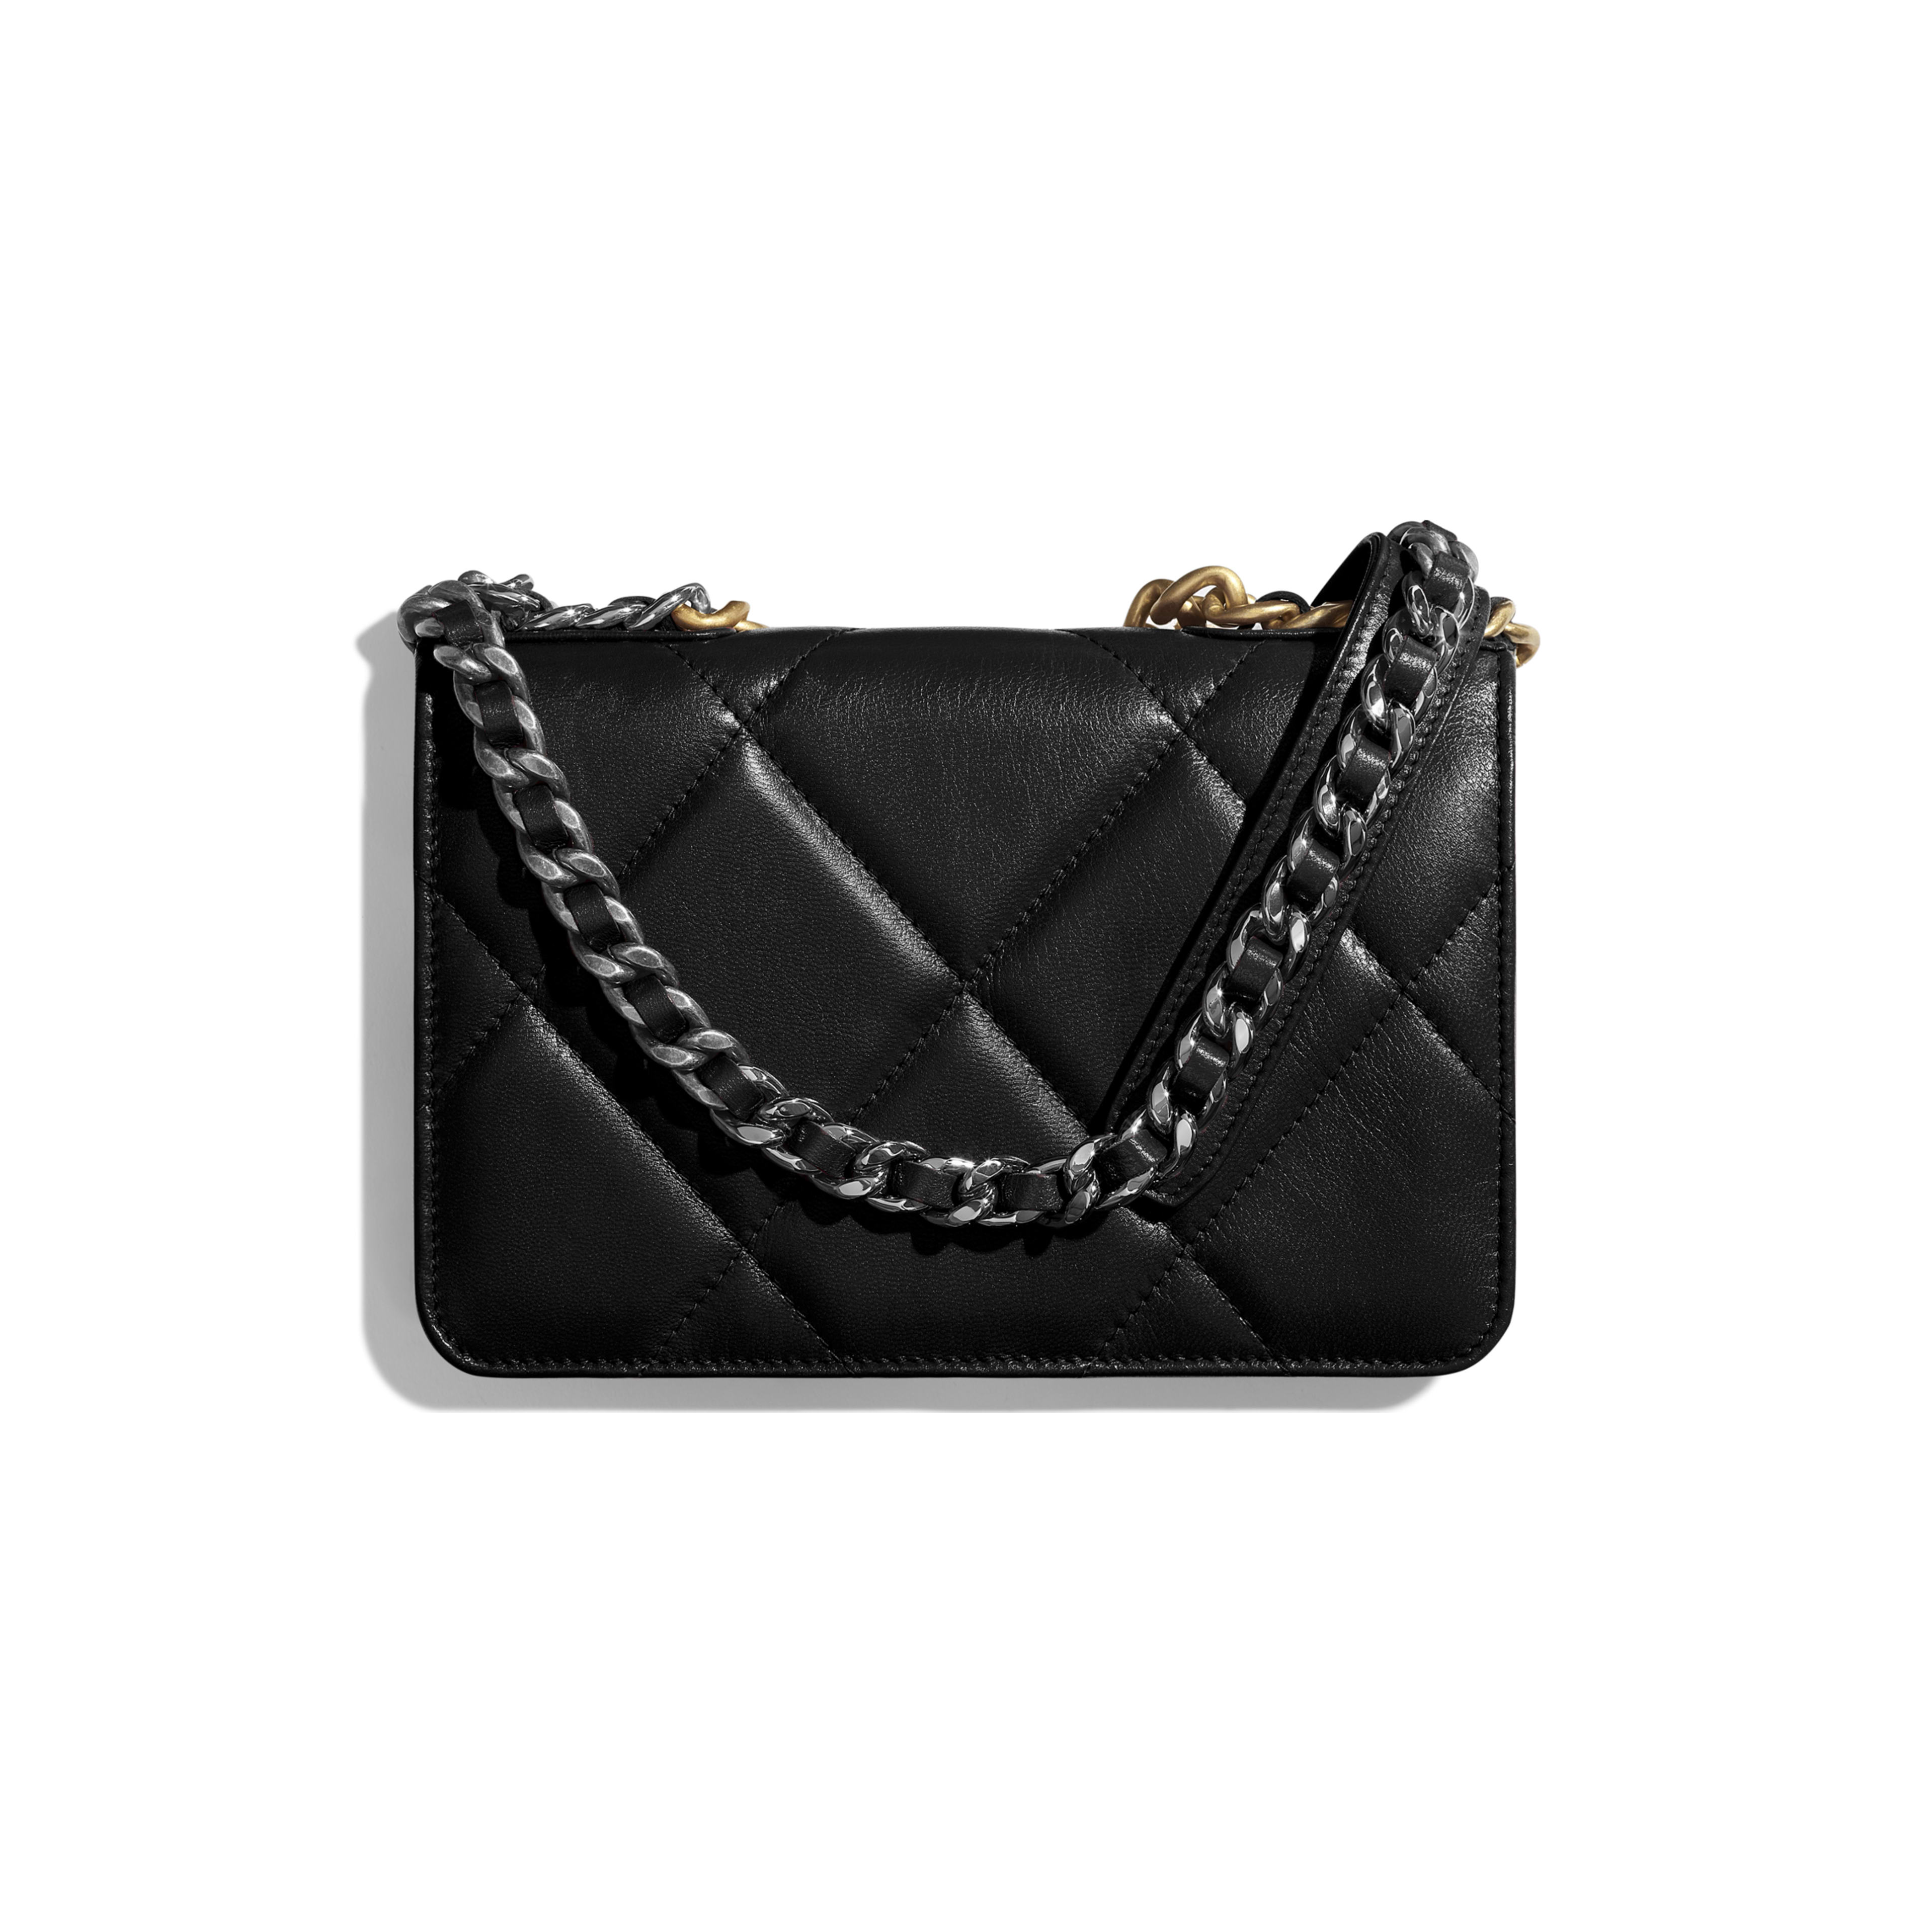 CHANEL 19 Wallet on Chain - Black - Goatskin, Gold-Tone, Silver-Tone & Ruthenium-Finish Metal - Alternative view - see full sized version